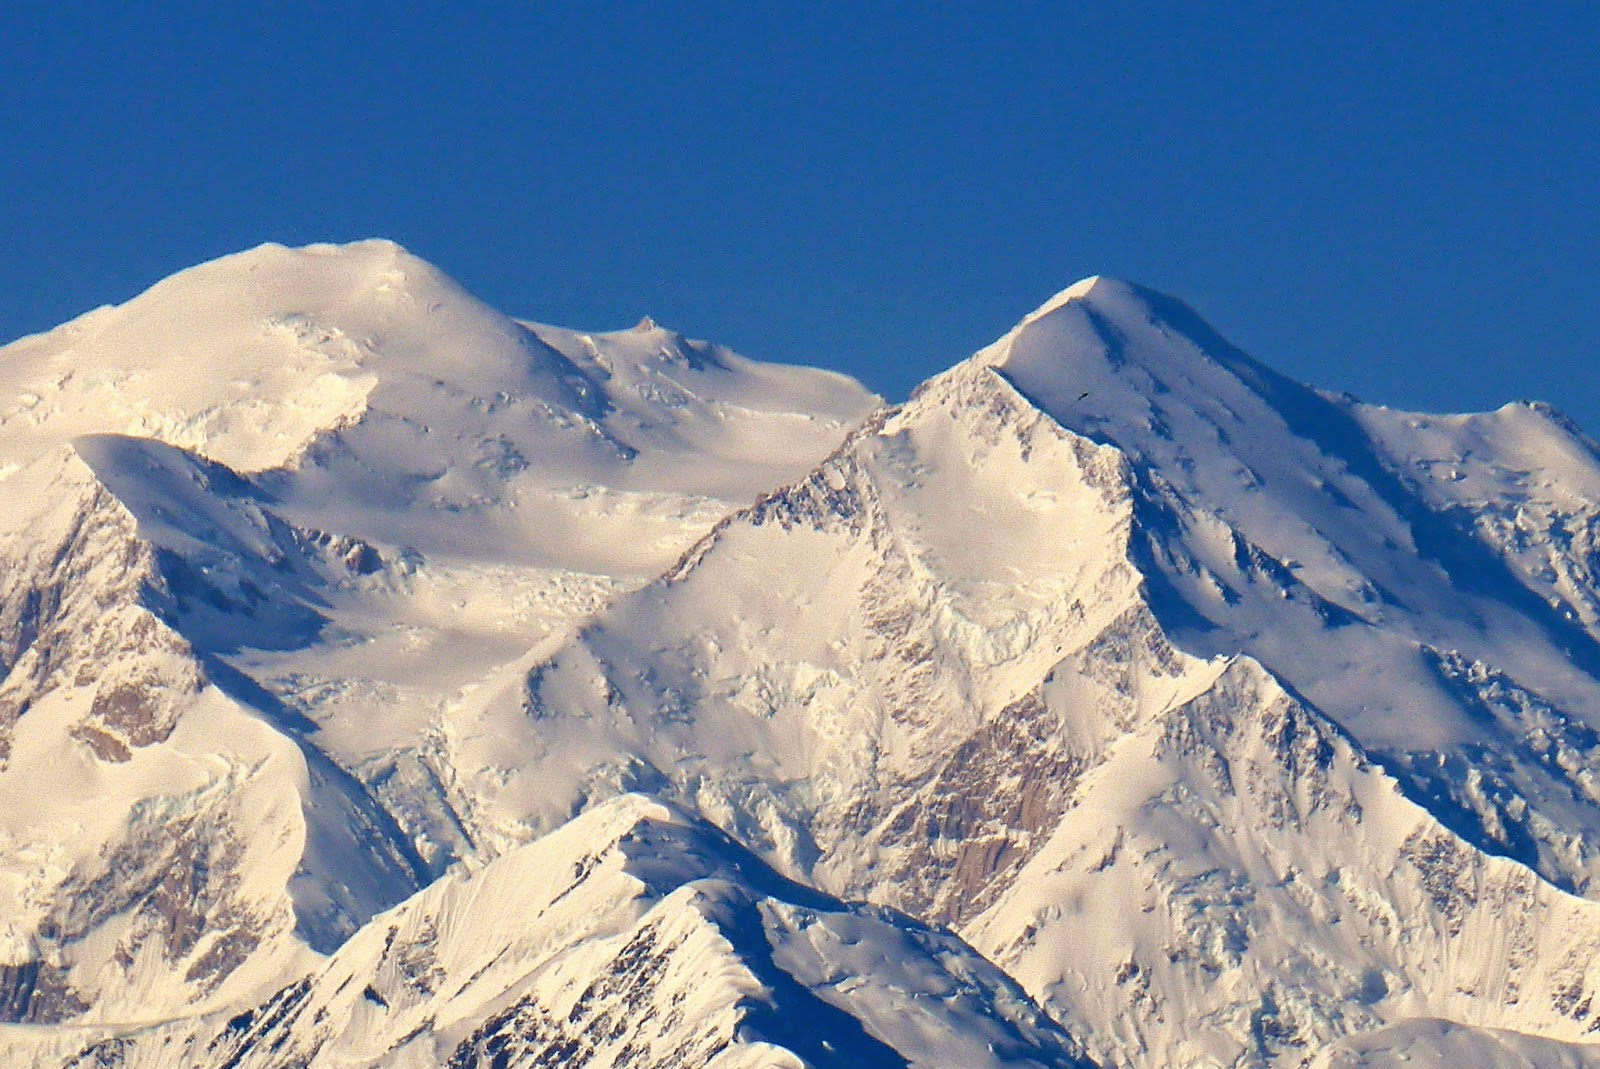 Denali, the Great One, 20,320 ft. or 6,193 m